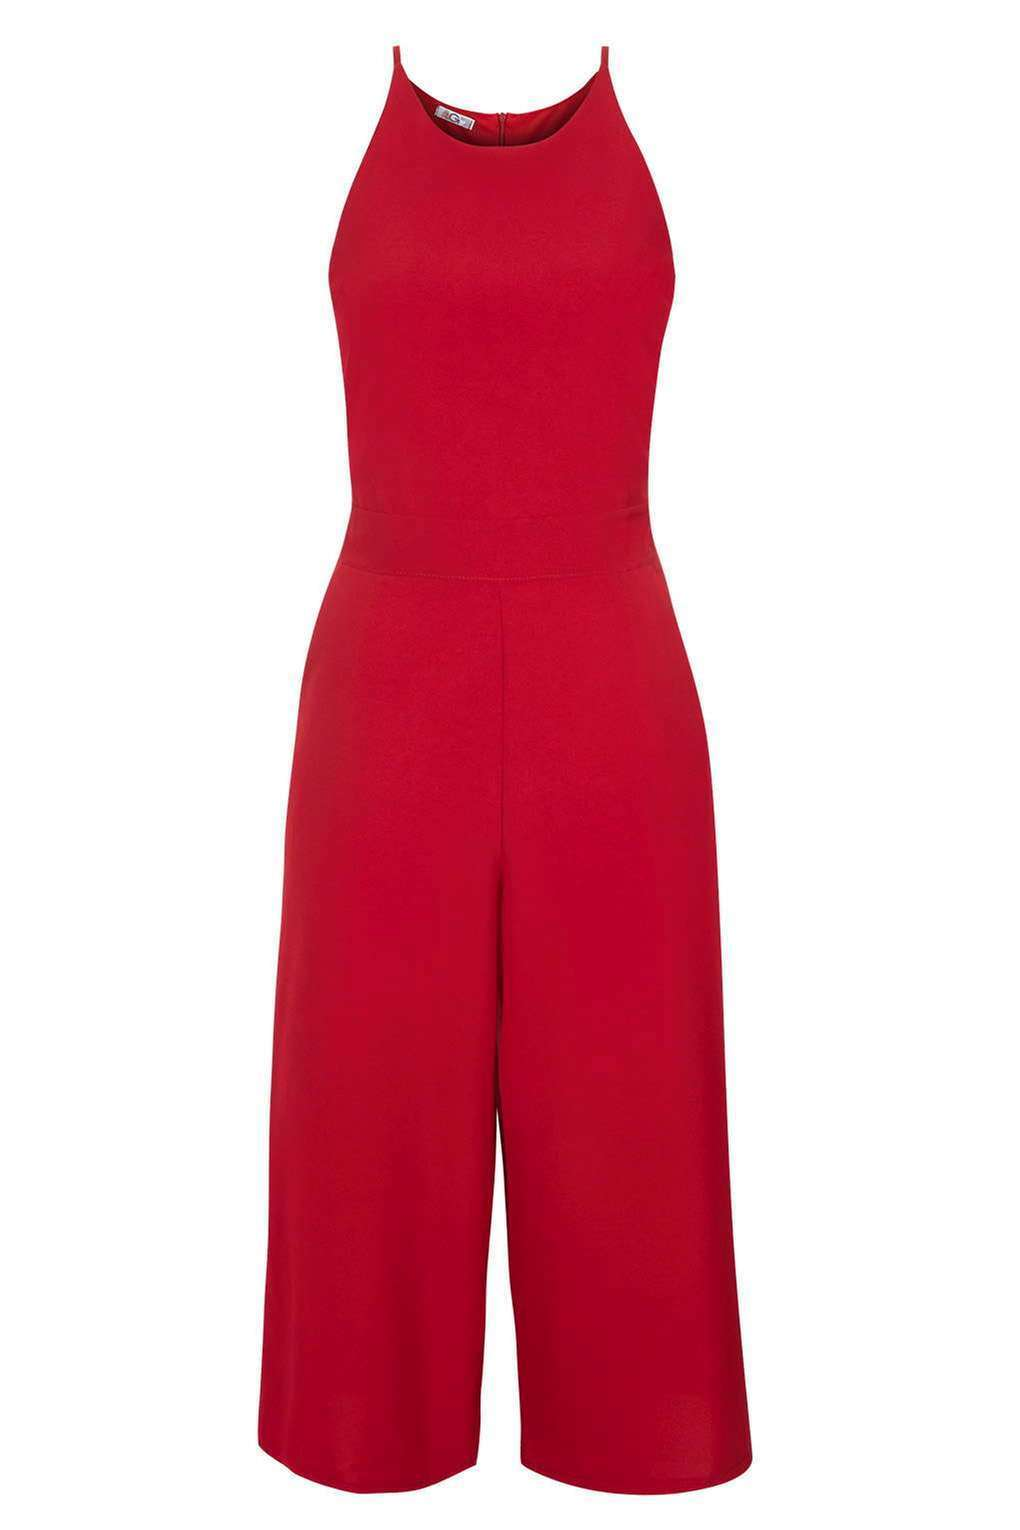 Red Wine Culotte Jumpsuit by Wal G at Topshop Bloggers Celebrity Size BNWT